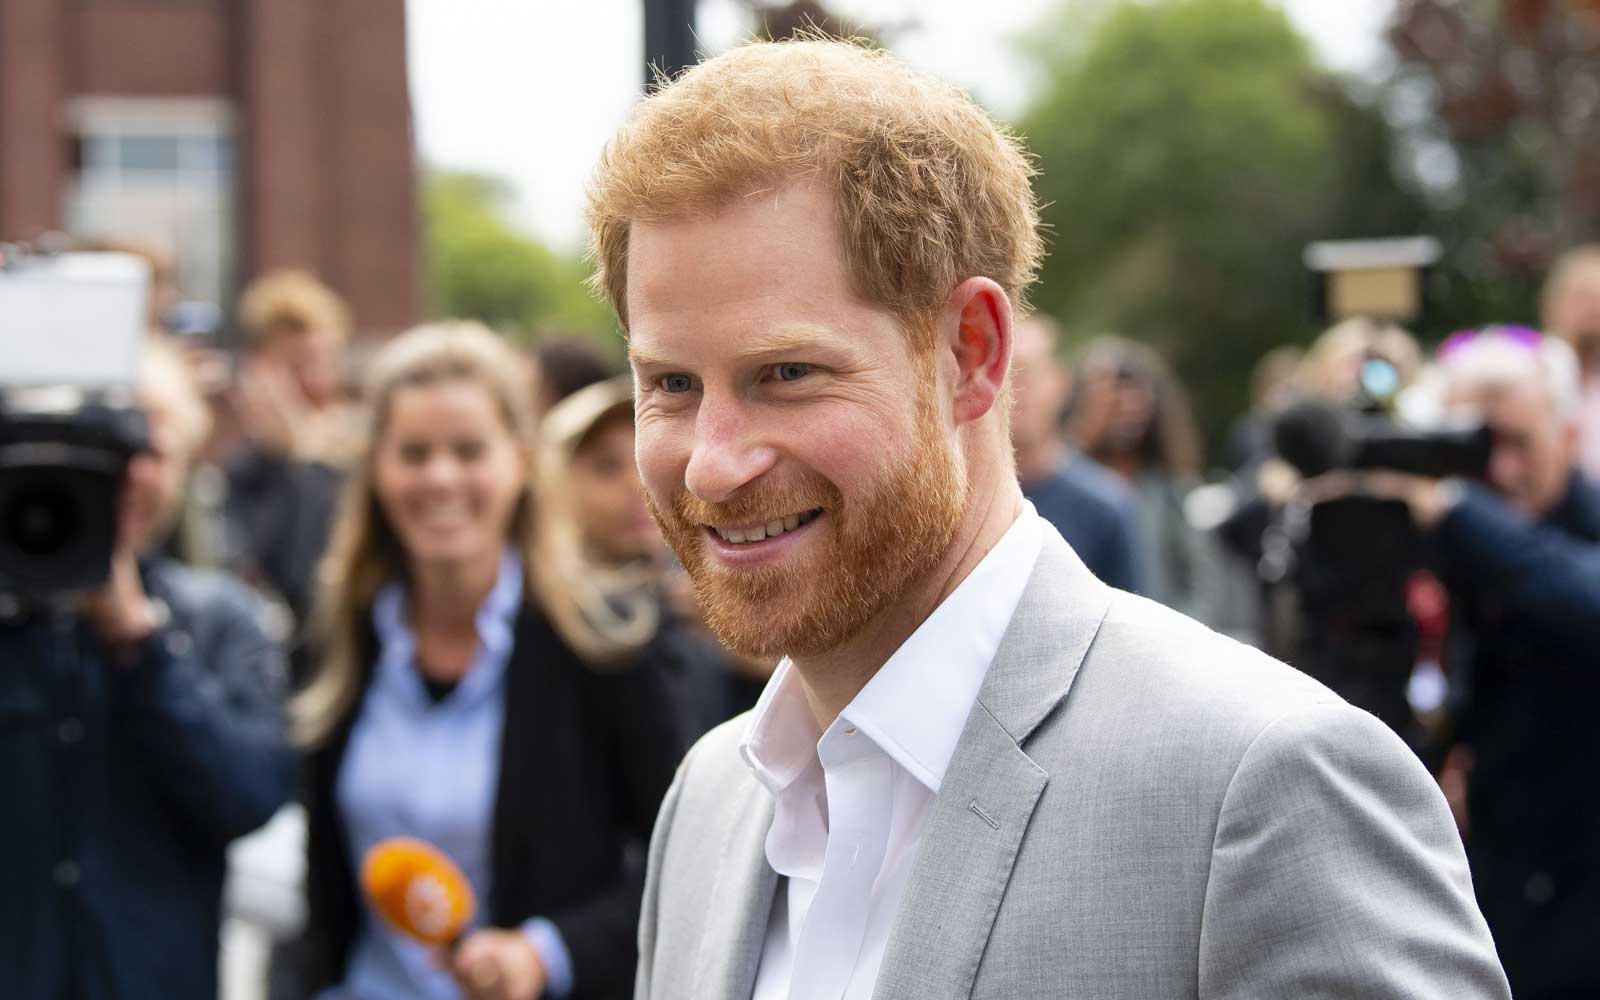 Prince Harry Jokes He Got the 'Best Night's Sleep' Since Archie's Arrival During Work Trip